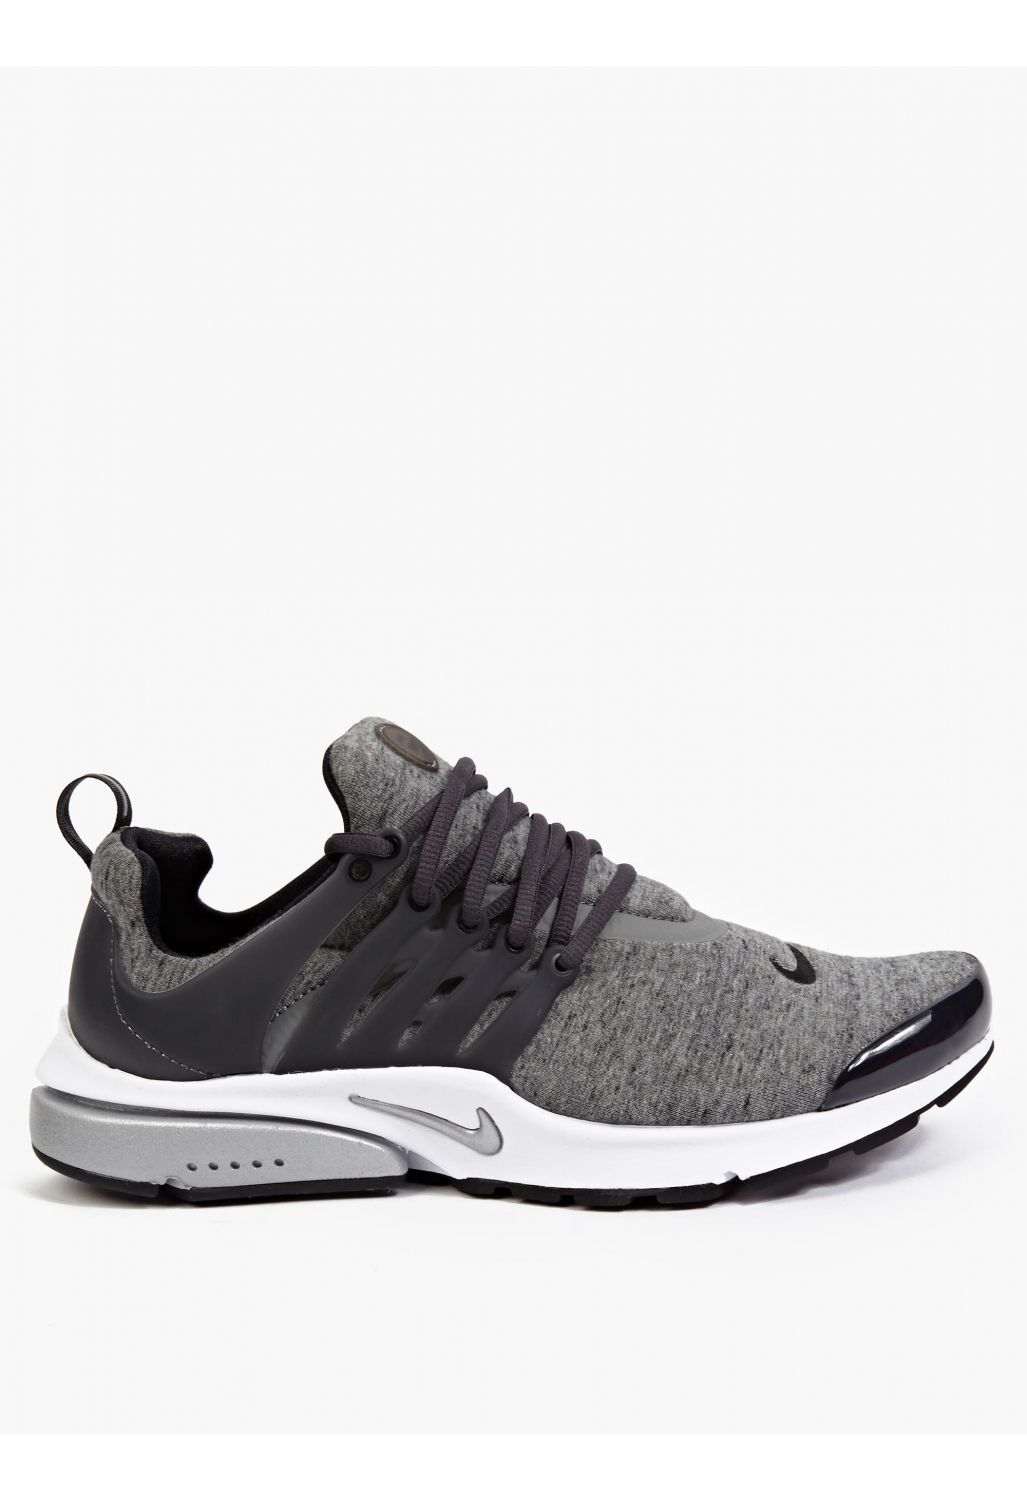 reputable site b87a1 29ee0 Nike Air Presto   Let s get some shoes.   Adidas shoes women ...